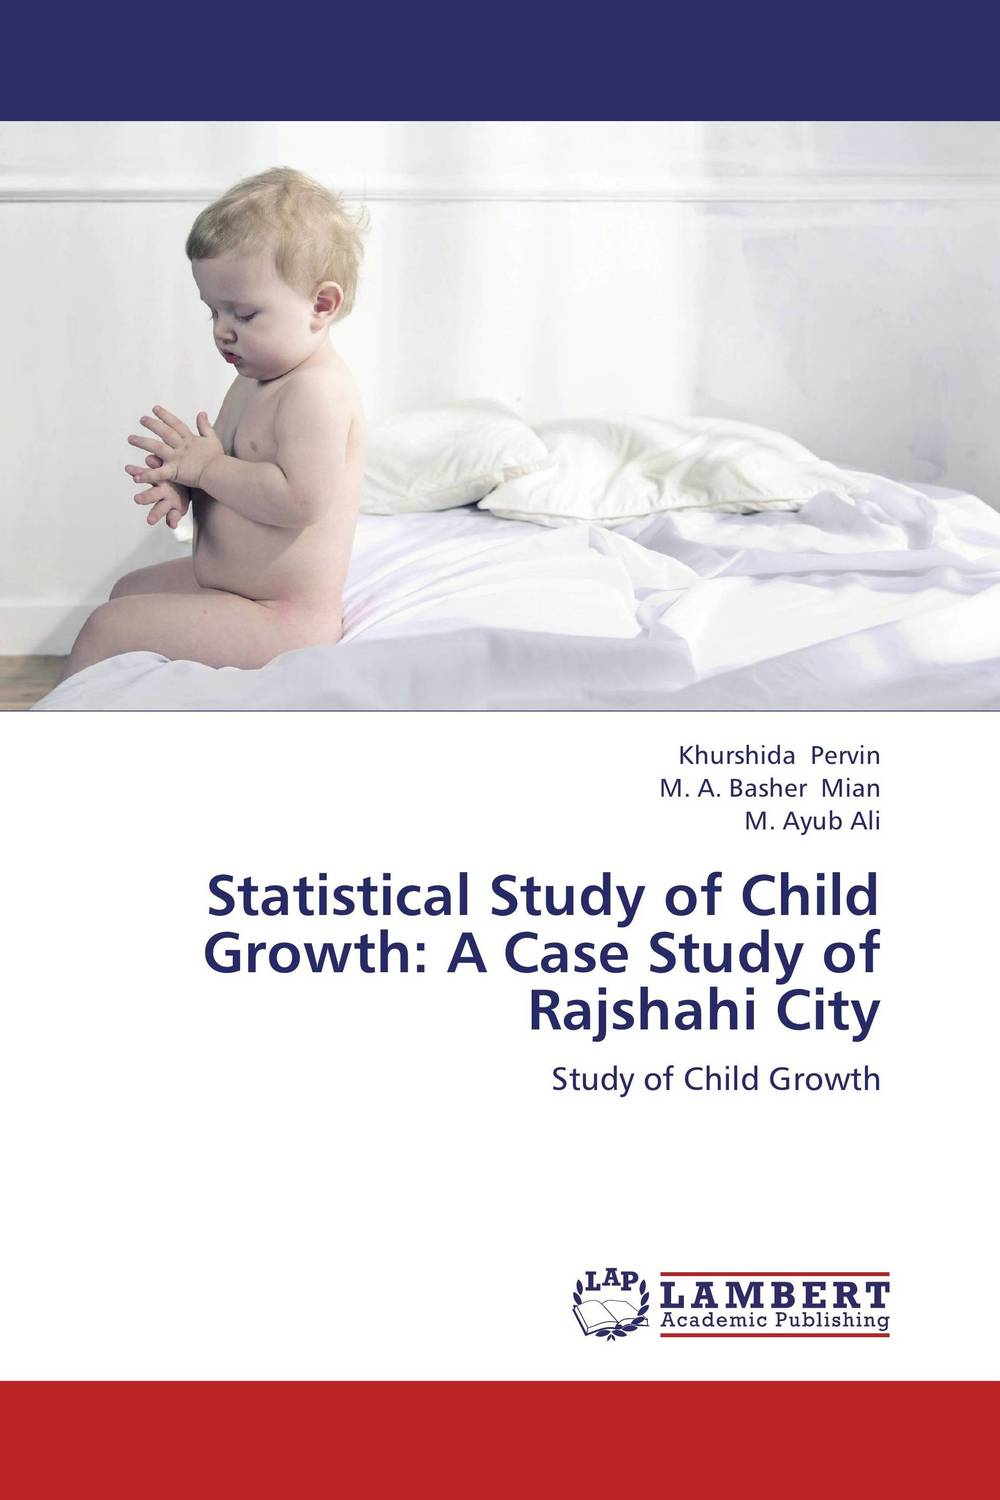 Statistical Study of Child Growth:  A Case Study of Rajshahi City a study of the religio political thought of abdurrahman wahid